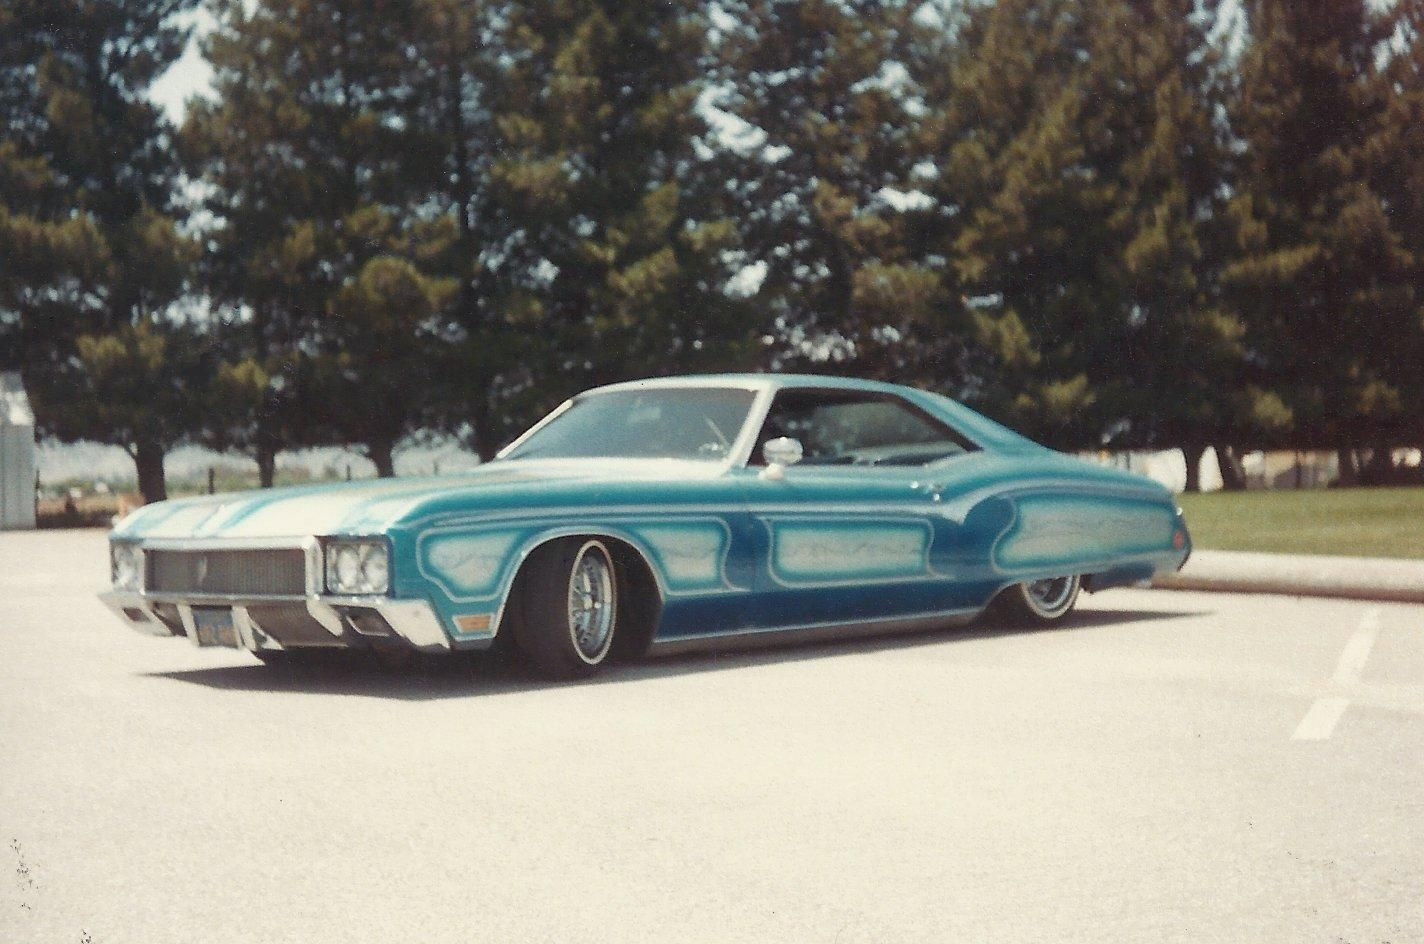 My 1970 Riviera in the early 80s... Zz Top Dad